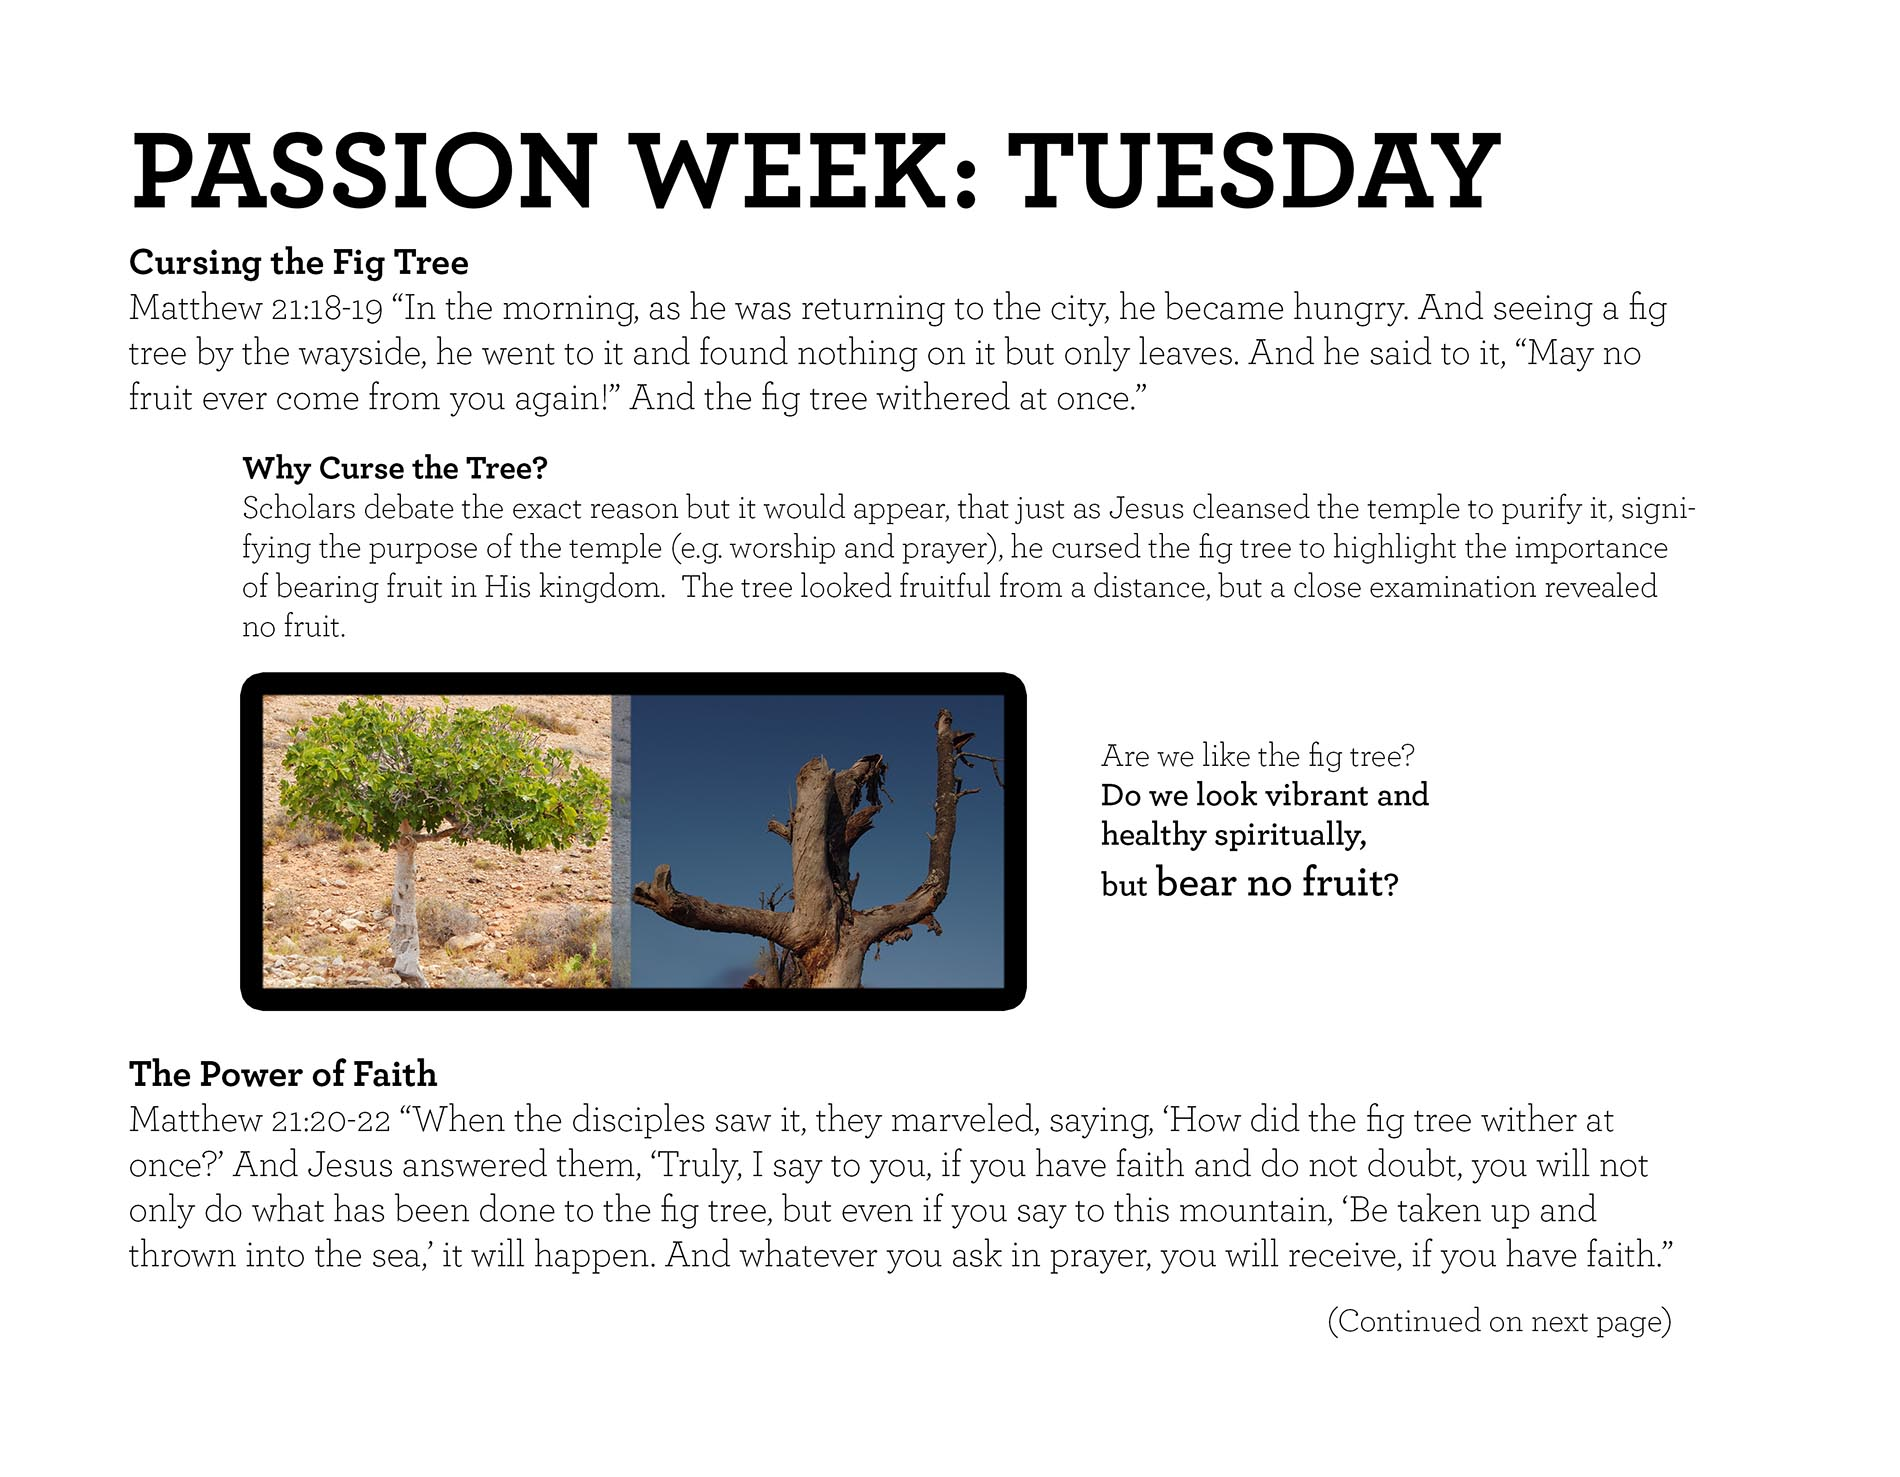 PASSION WEEK: TUESDAY Matthew 21:18-19